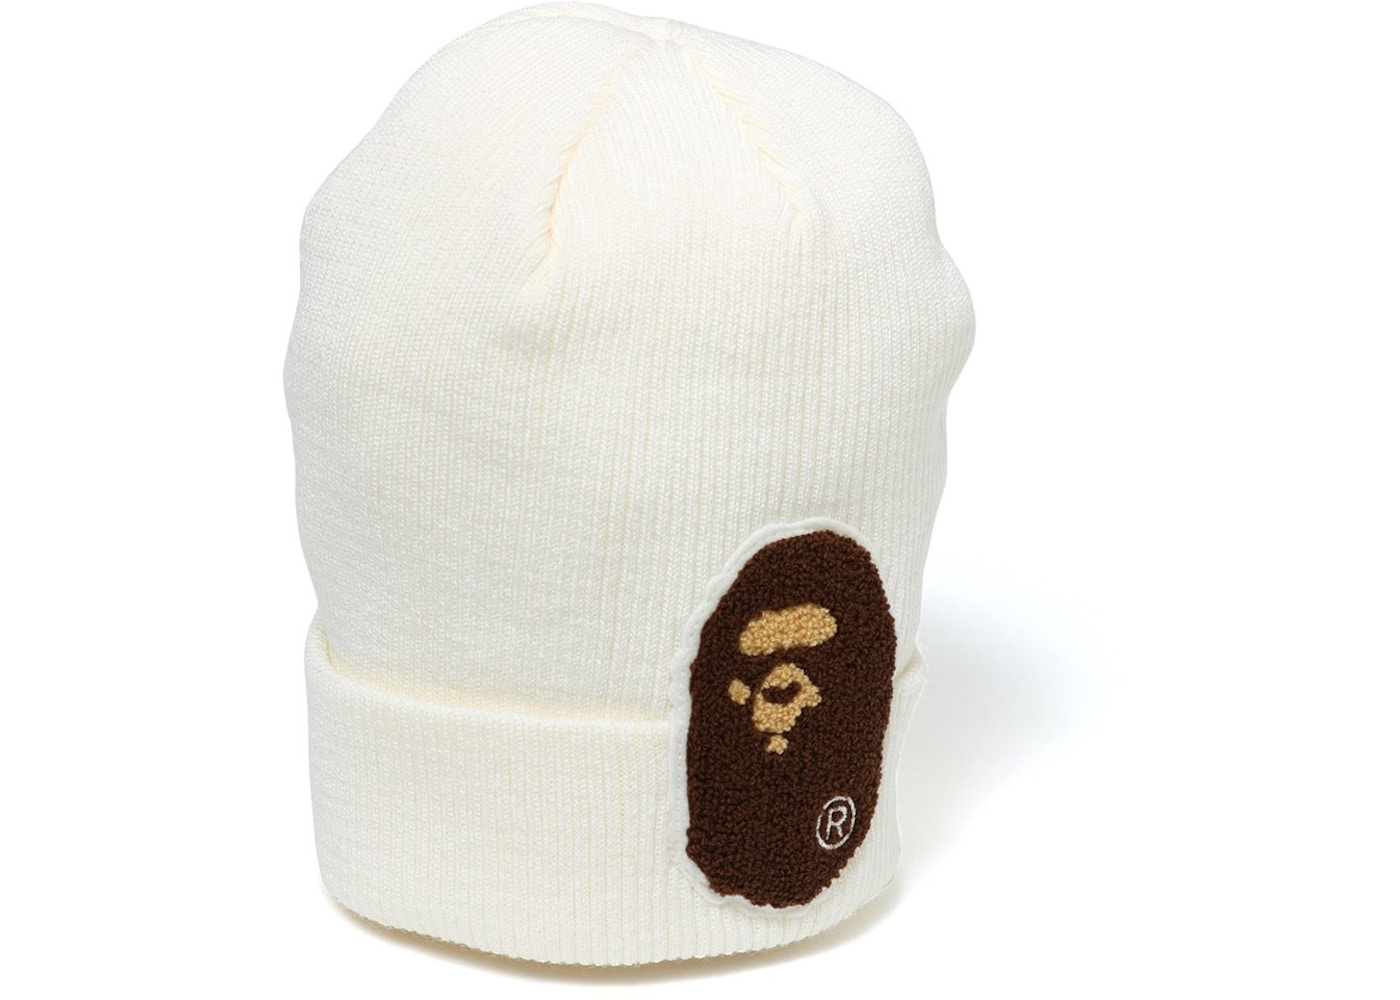 BAPE Big Ape Head Knit Cap White. Big Ape Head Knit 5987f91c042